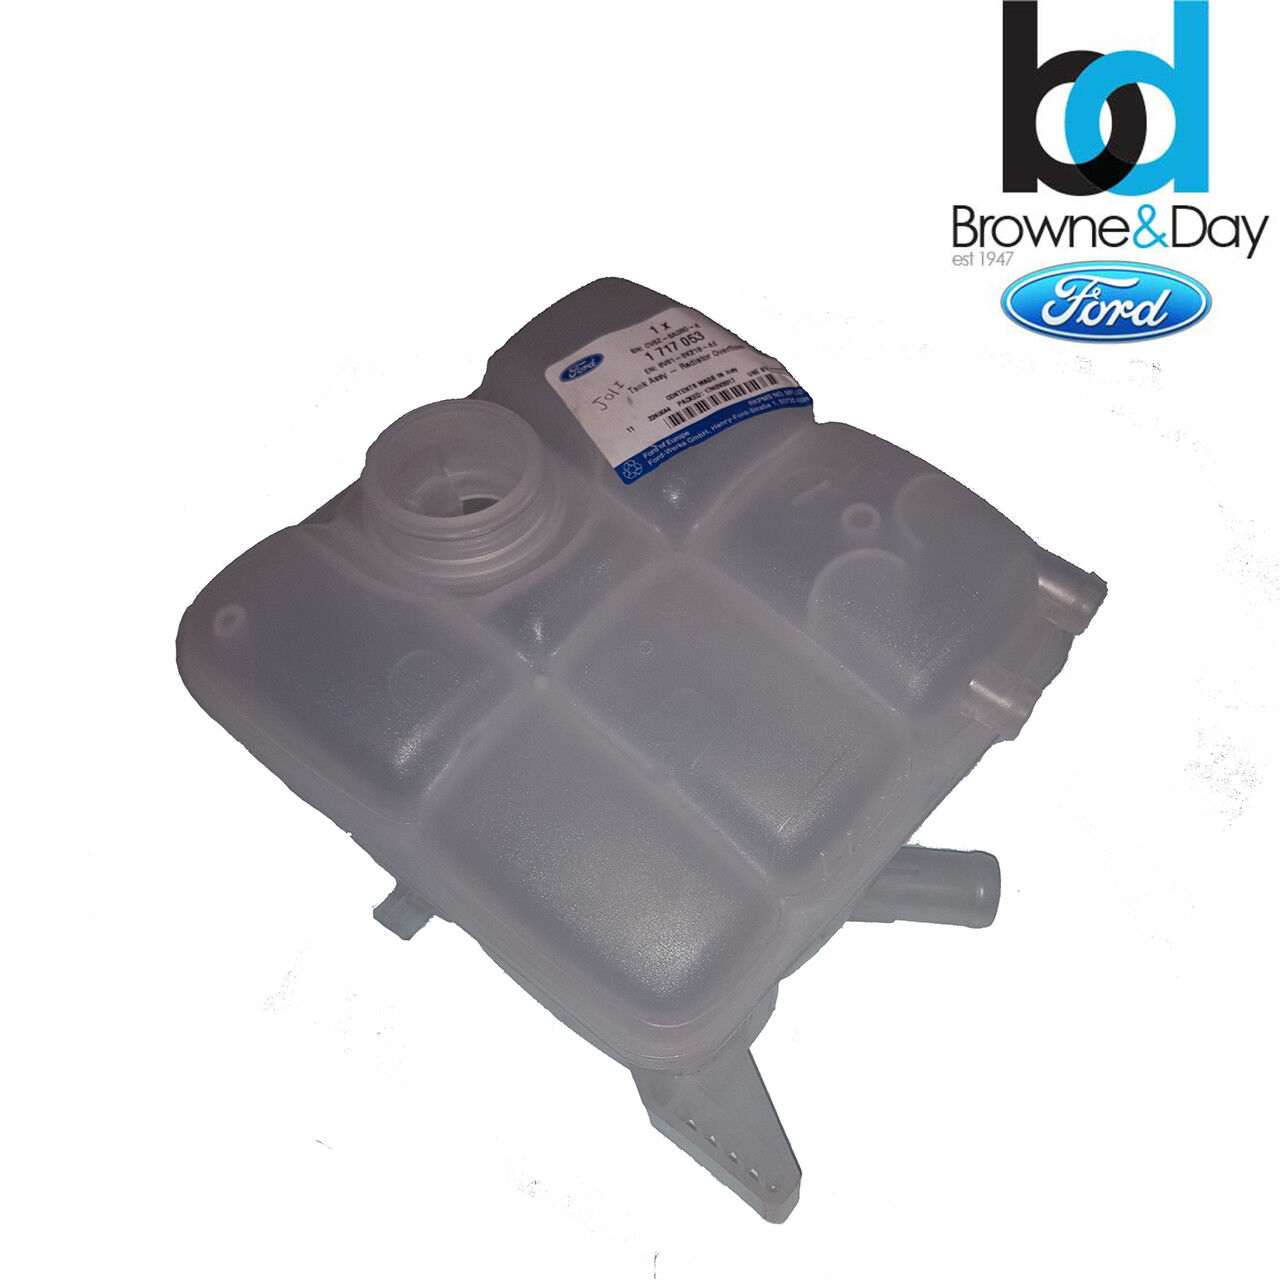 Genuine Ford Radiator Coolant Overflow Container Clip 4052804